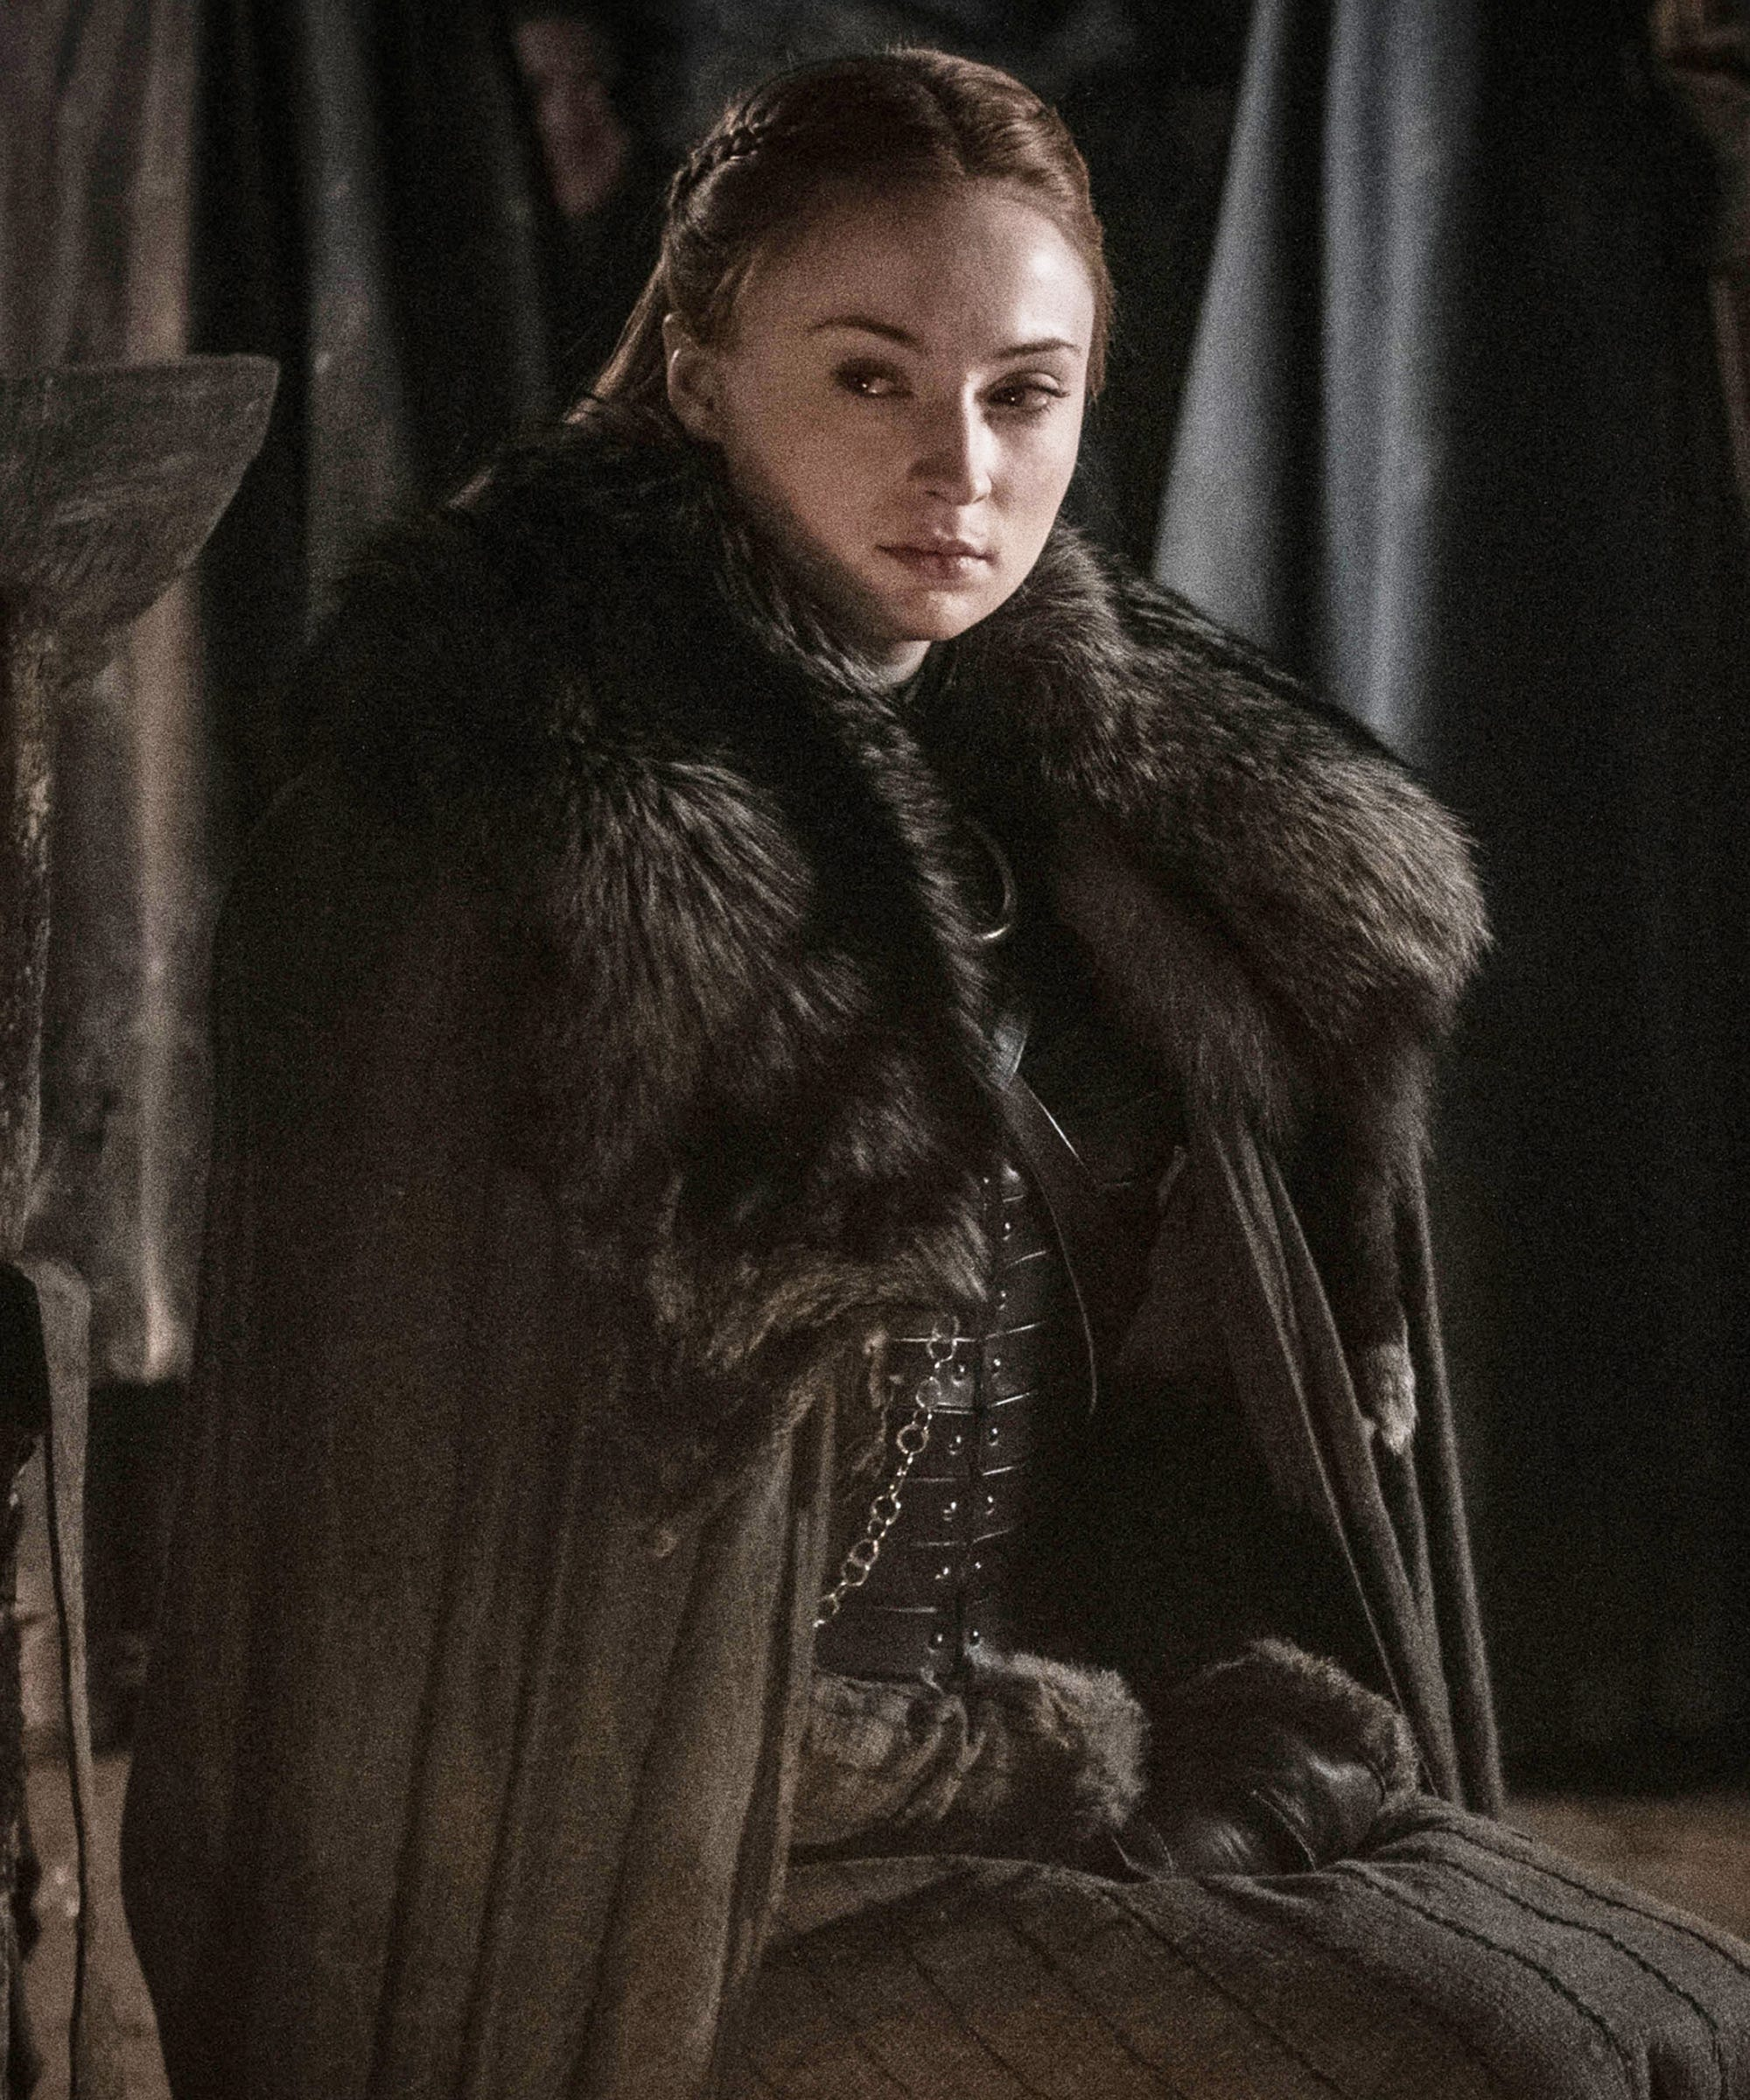 Sansa Taking The Iron Throne On Game of Thrones Is Looking More & More Likely